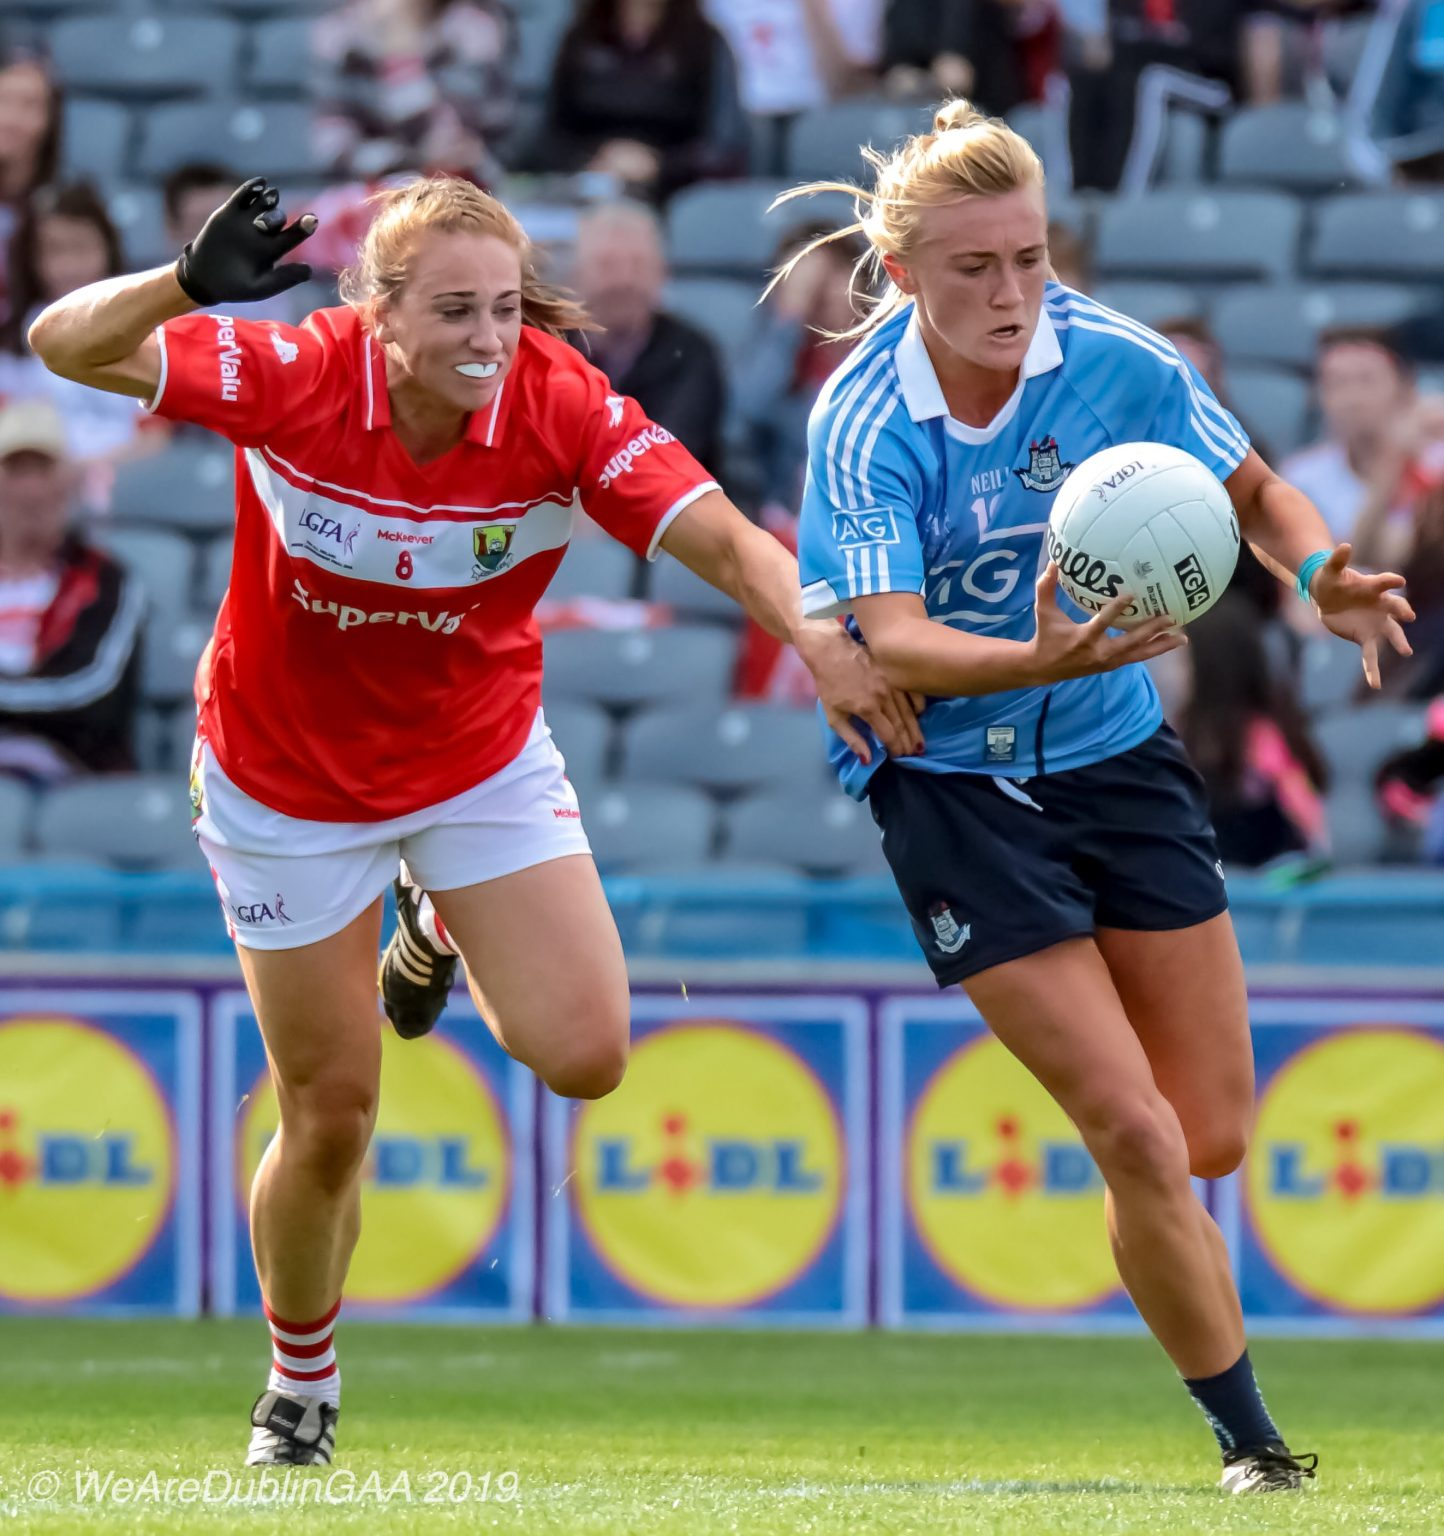 Dublin ladies footballer in a sky blue jersey and navy shorts gets away from a Cork player in a red jersey and white shorts in the 2018 All Ireland Final which was a game changer win for Dublin